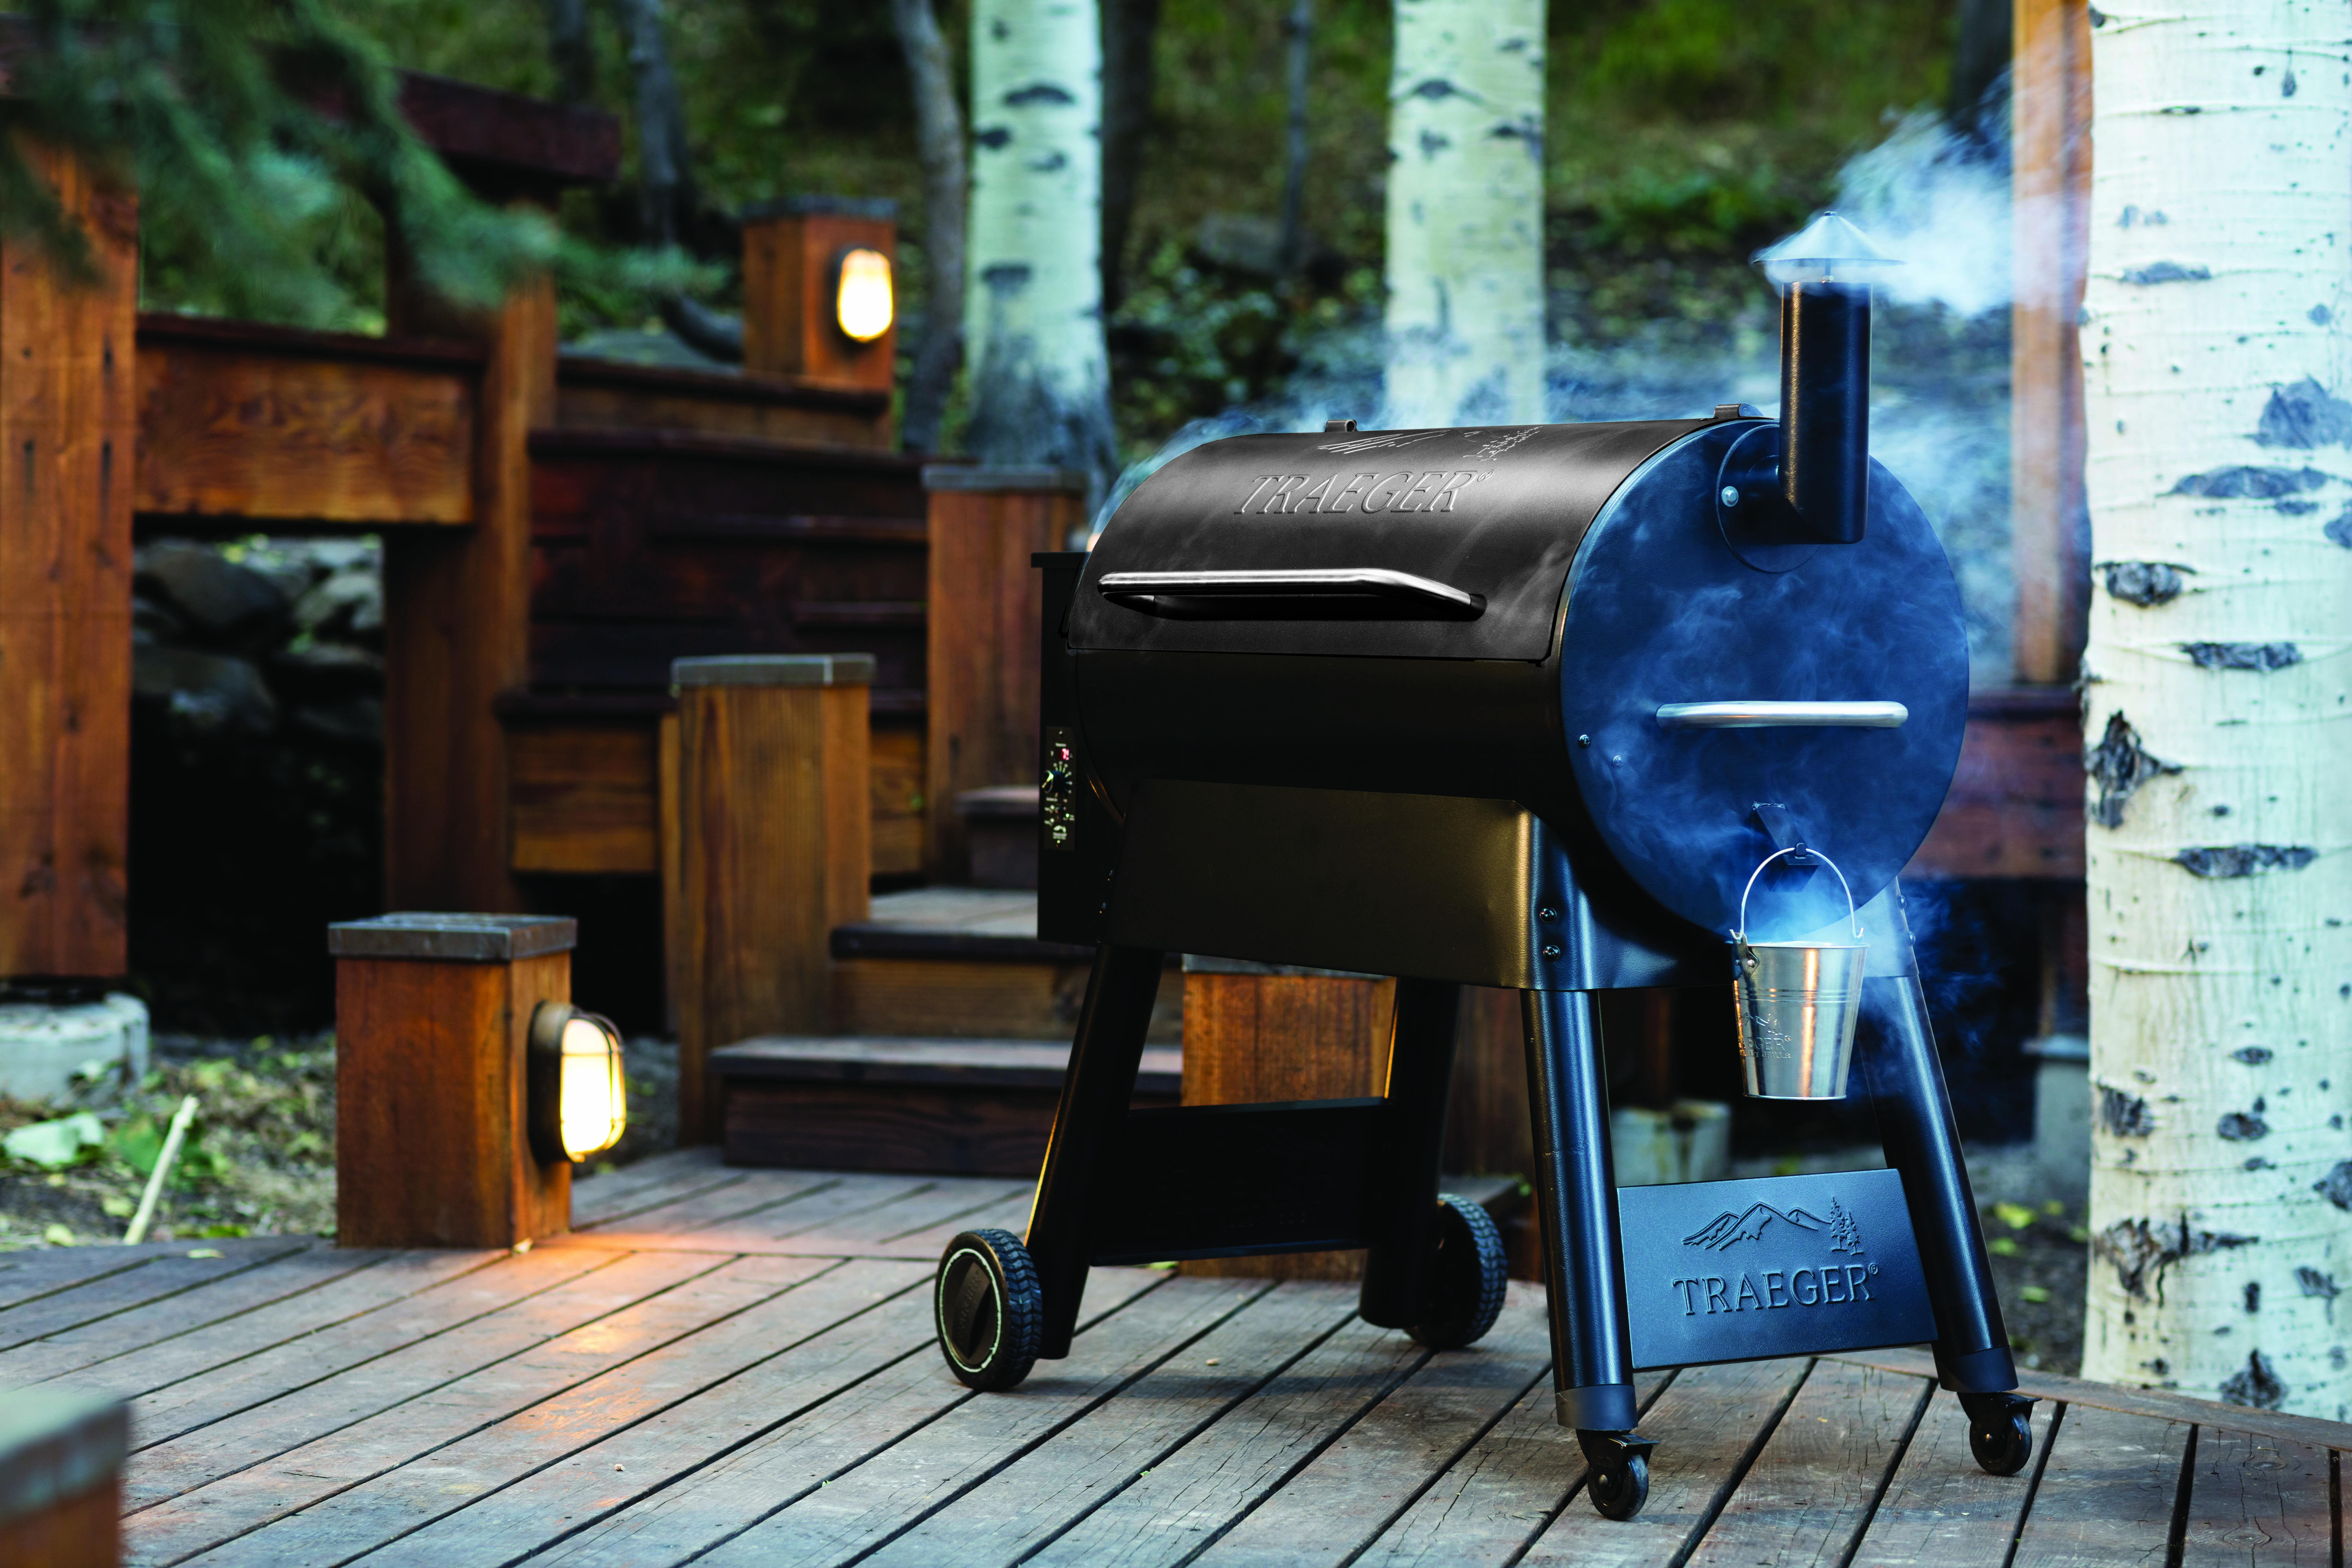 Get fired up for barbecue season How to choose an outdoor grill